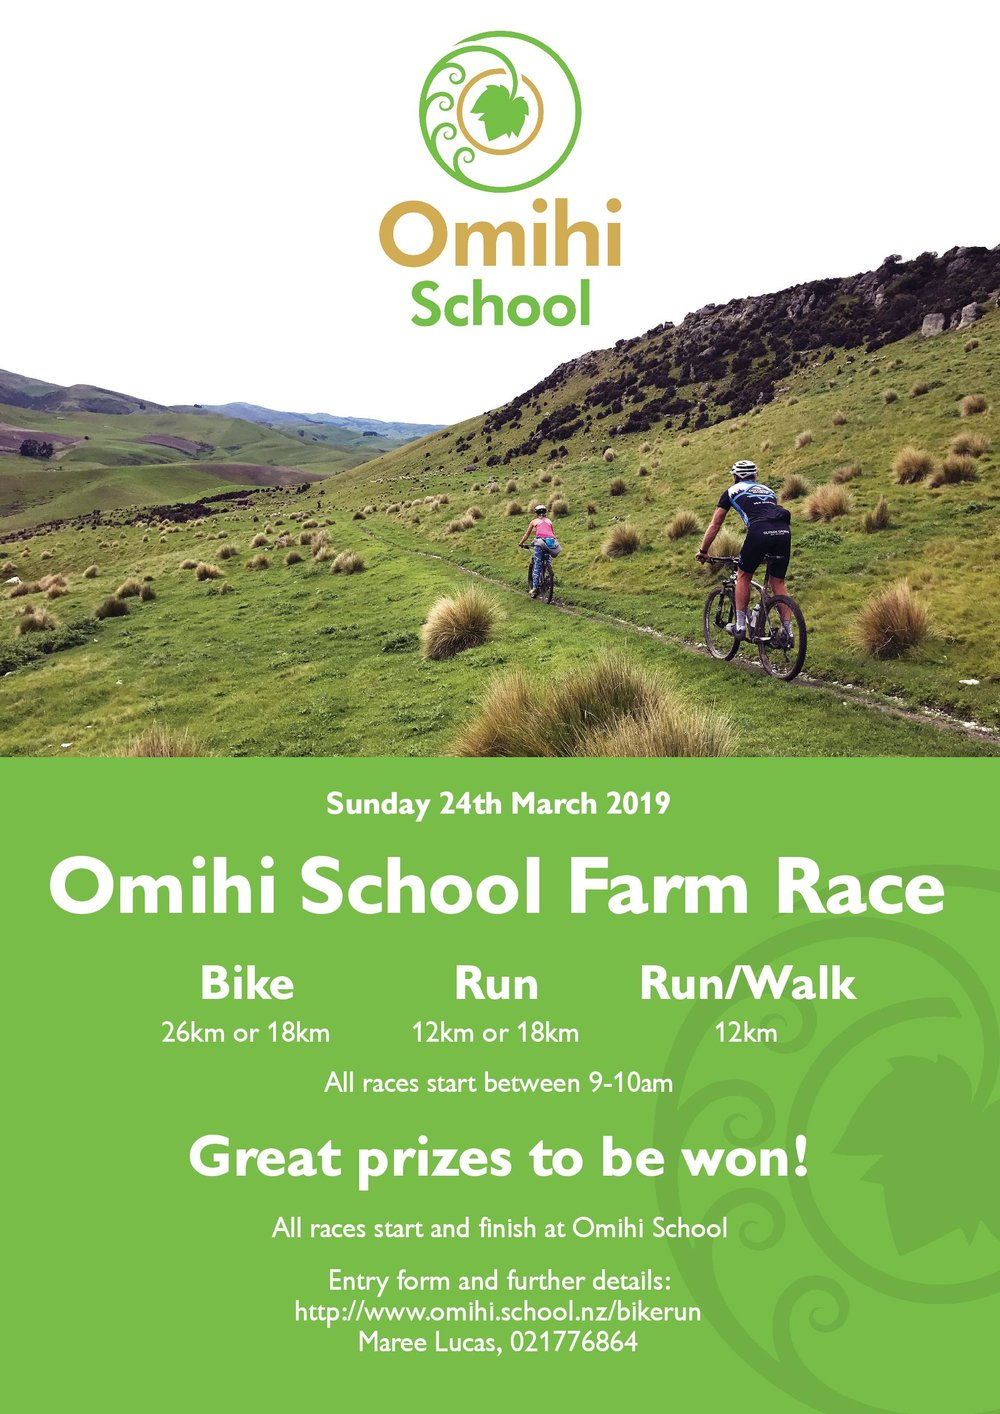 Omihi School Fun Run Bike Walk Poster WEB-page-001.jpg